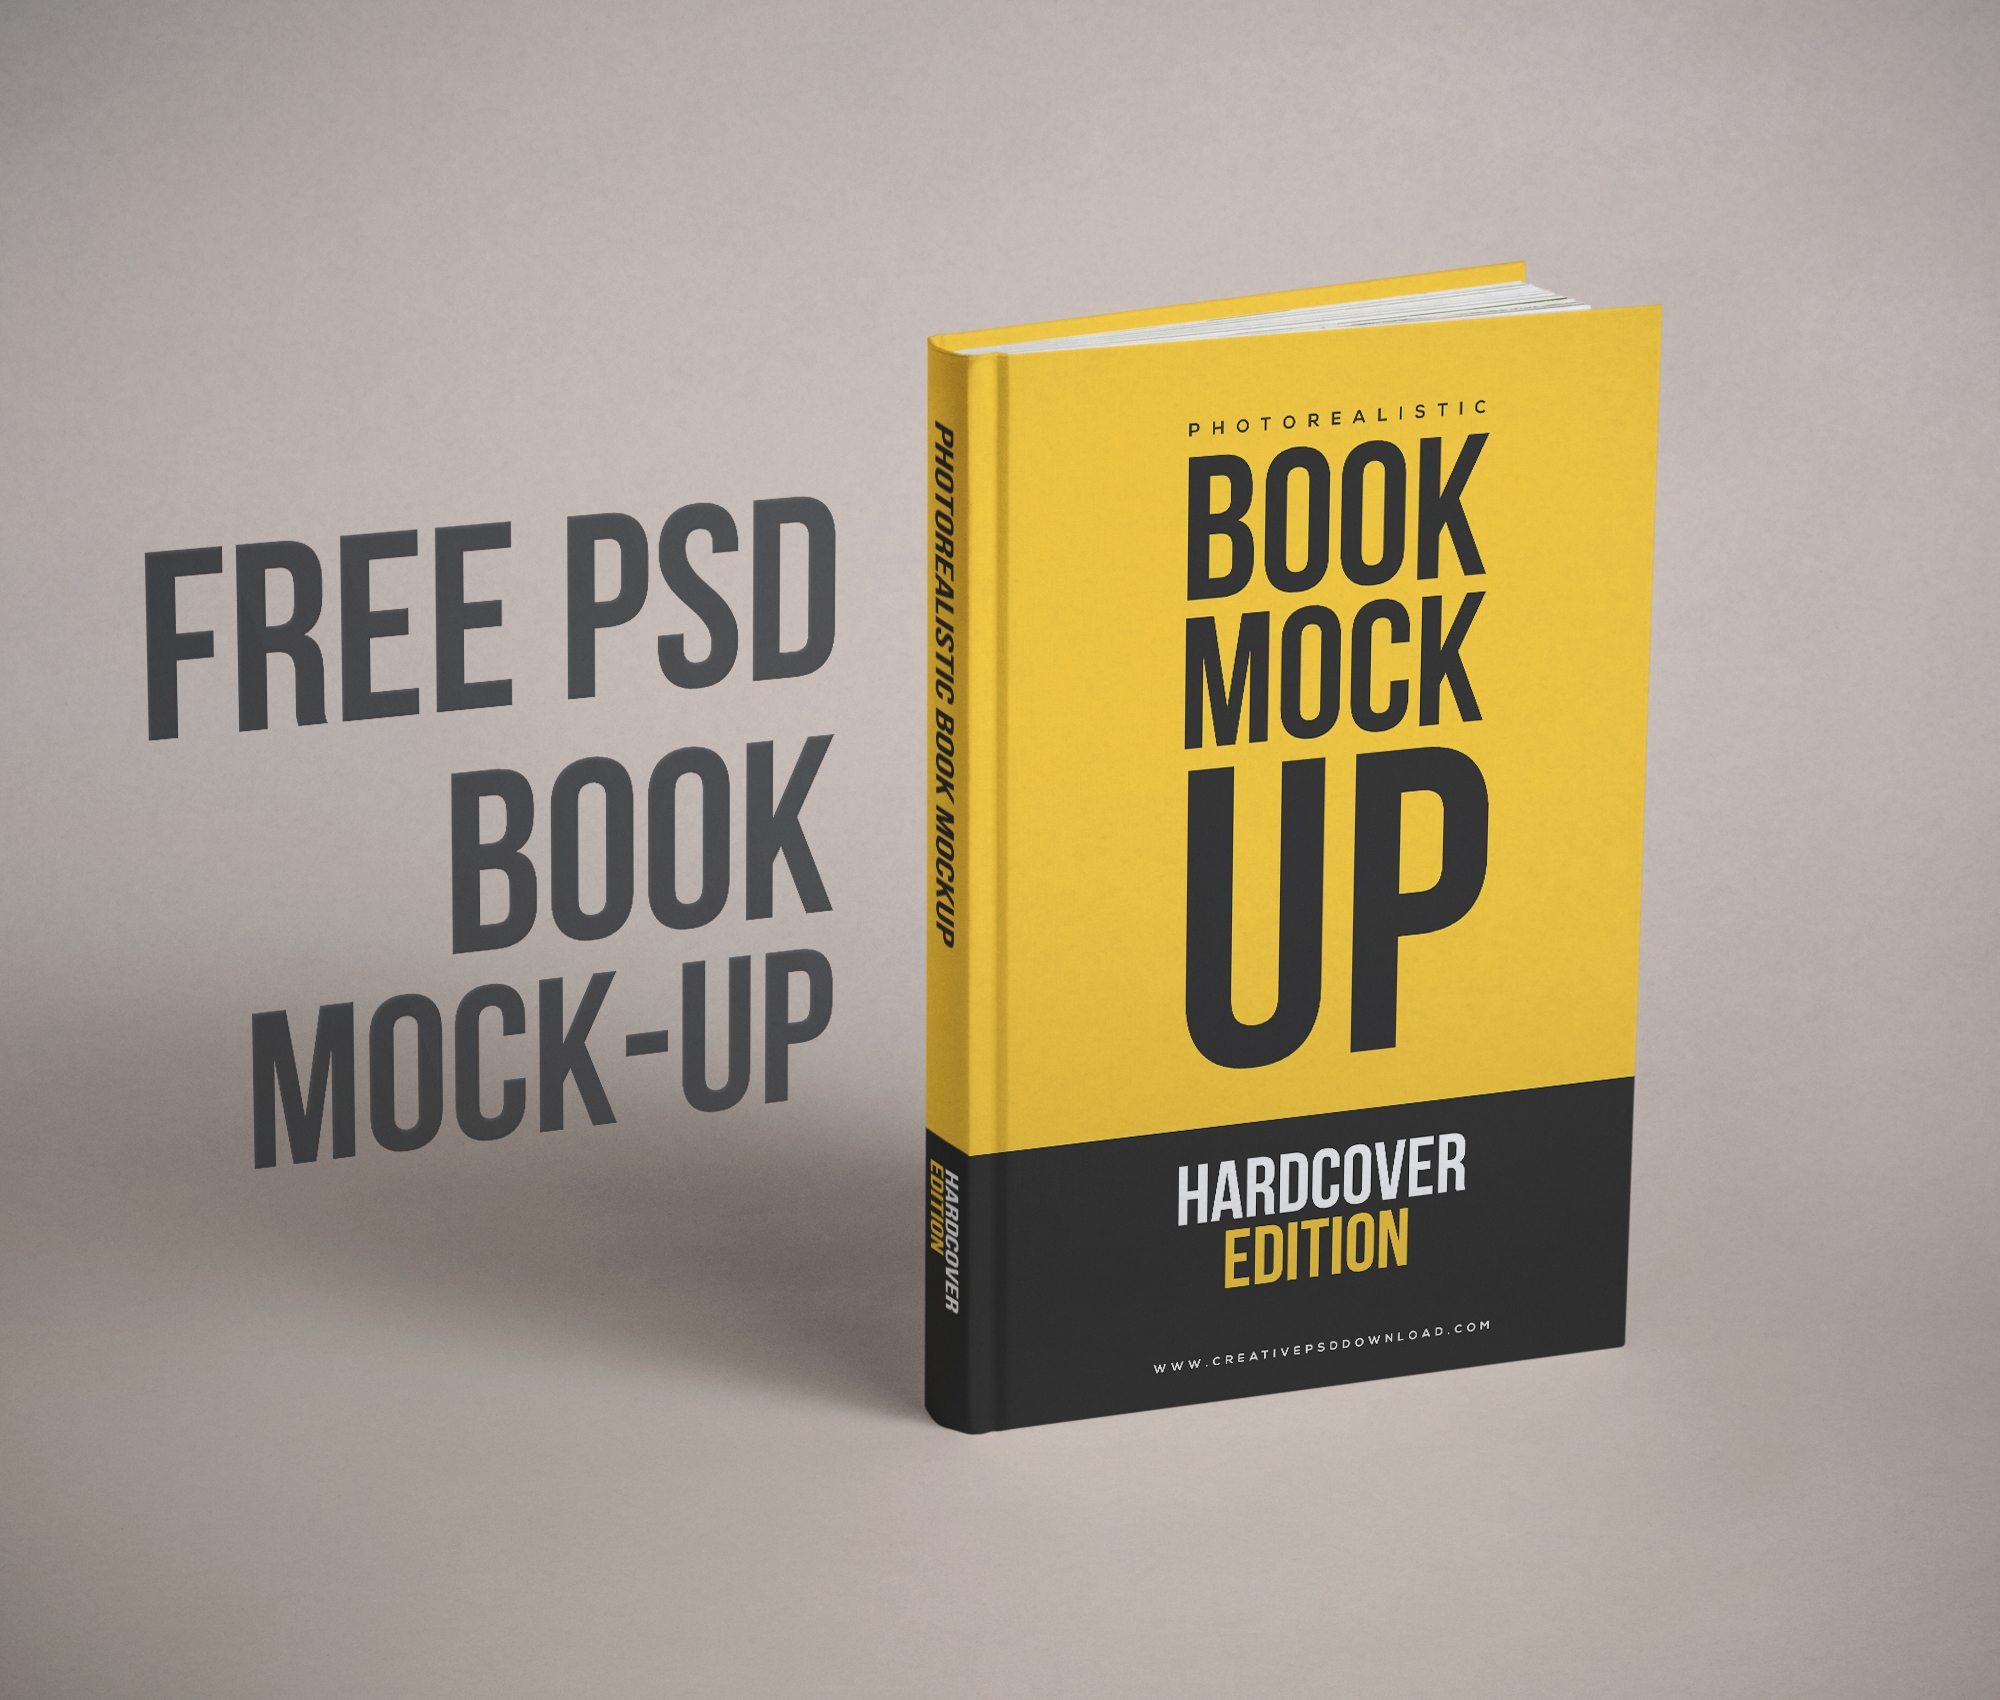 Realistic Book Cover Free PSD Mockup,free psd, download psd,creative psd,psd mockup,free mockup,book mockup,book cover design,free psd mockup download,3d book cover,book cover,book cover design template,book cover indesign,book cover mockup,book cover mockup free,book cover template,book mockup,book mockup free,book mockup psd,book mockup psd free,branding mockup,cover book psd,free book cover templates,free landscape book mockup,magazine cover mockup,magazine cover mockup free,magazine mockup,magazine mockup free,magazine mockup psd,mock up book,mockup book free,mockup magazine,notebook mockup,notebook mockup free,photo book psd template,photoshop book mockup,photoshop book template,poster mockup,square book mockup,mockup psd,psd daddy,daddy psd,freebie,psdfreebies,psd freebies,graphics,download psd,,3d mockup,book,cover mockup,magazine,magazine cover,magazine cover design,mockup,mockups